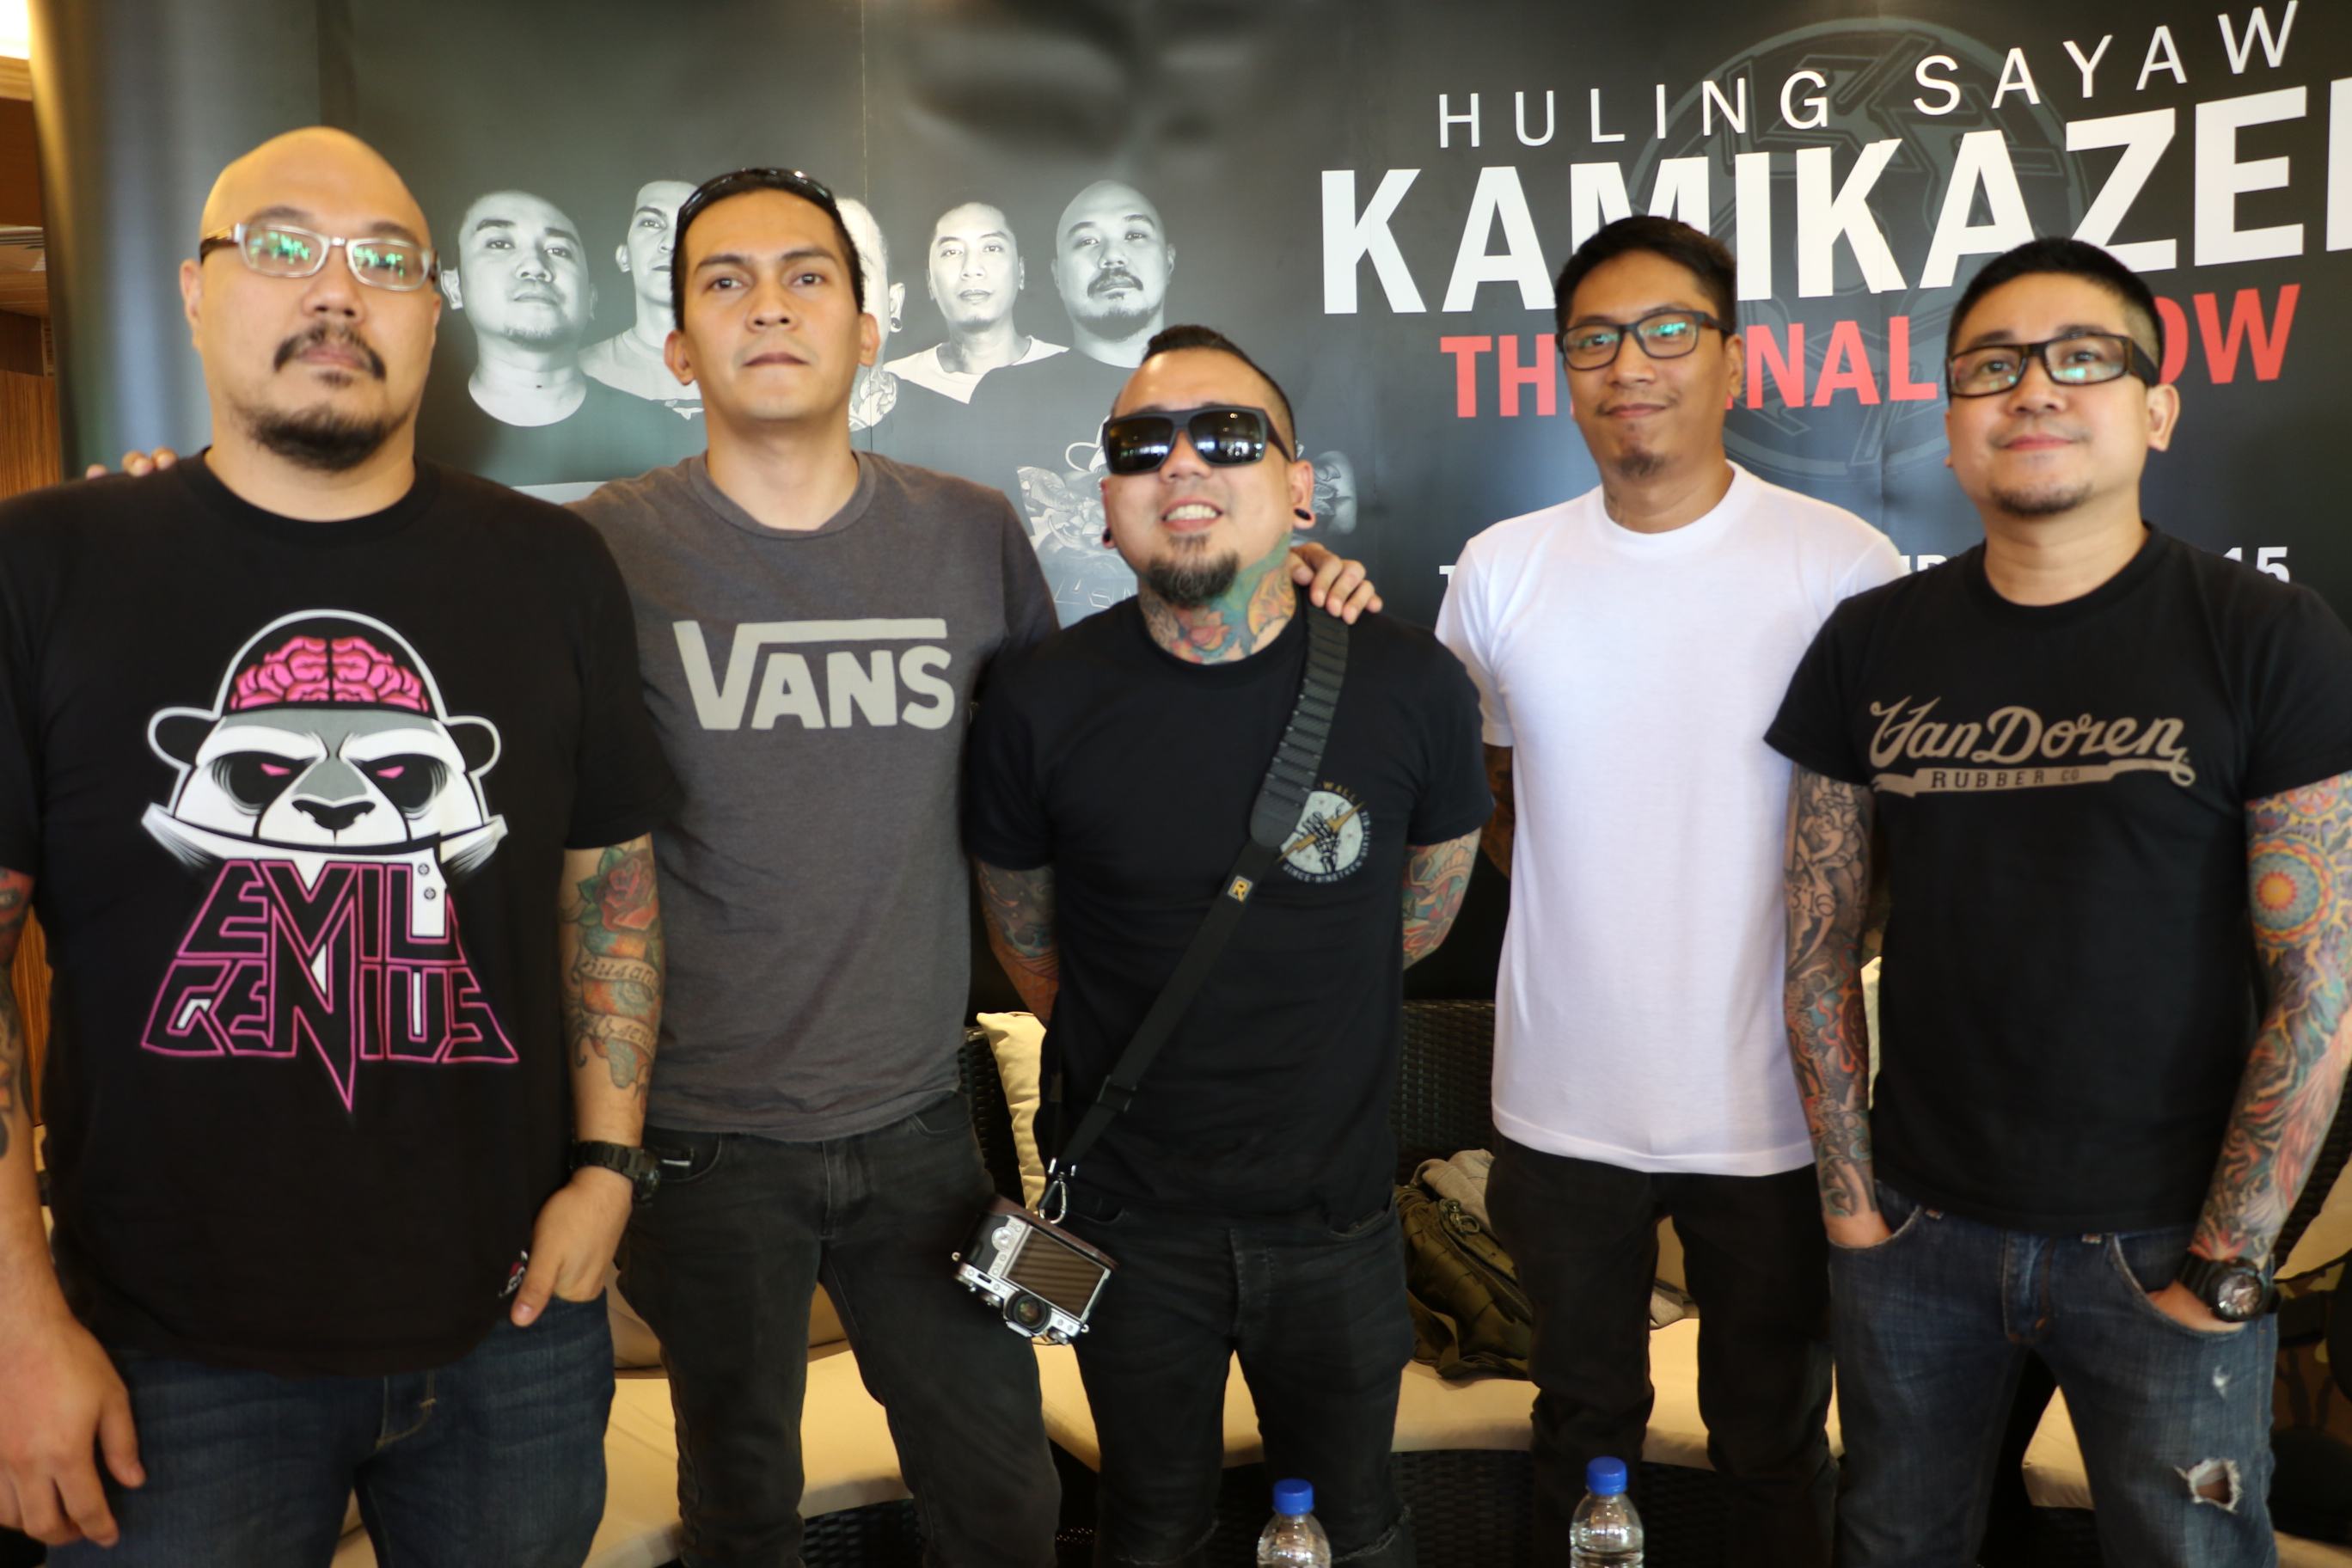 15 YEARS. Kamikazee at their interview with media. Photo by Sheen Seeckts